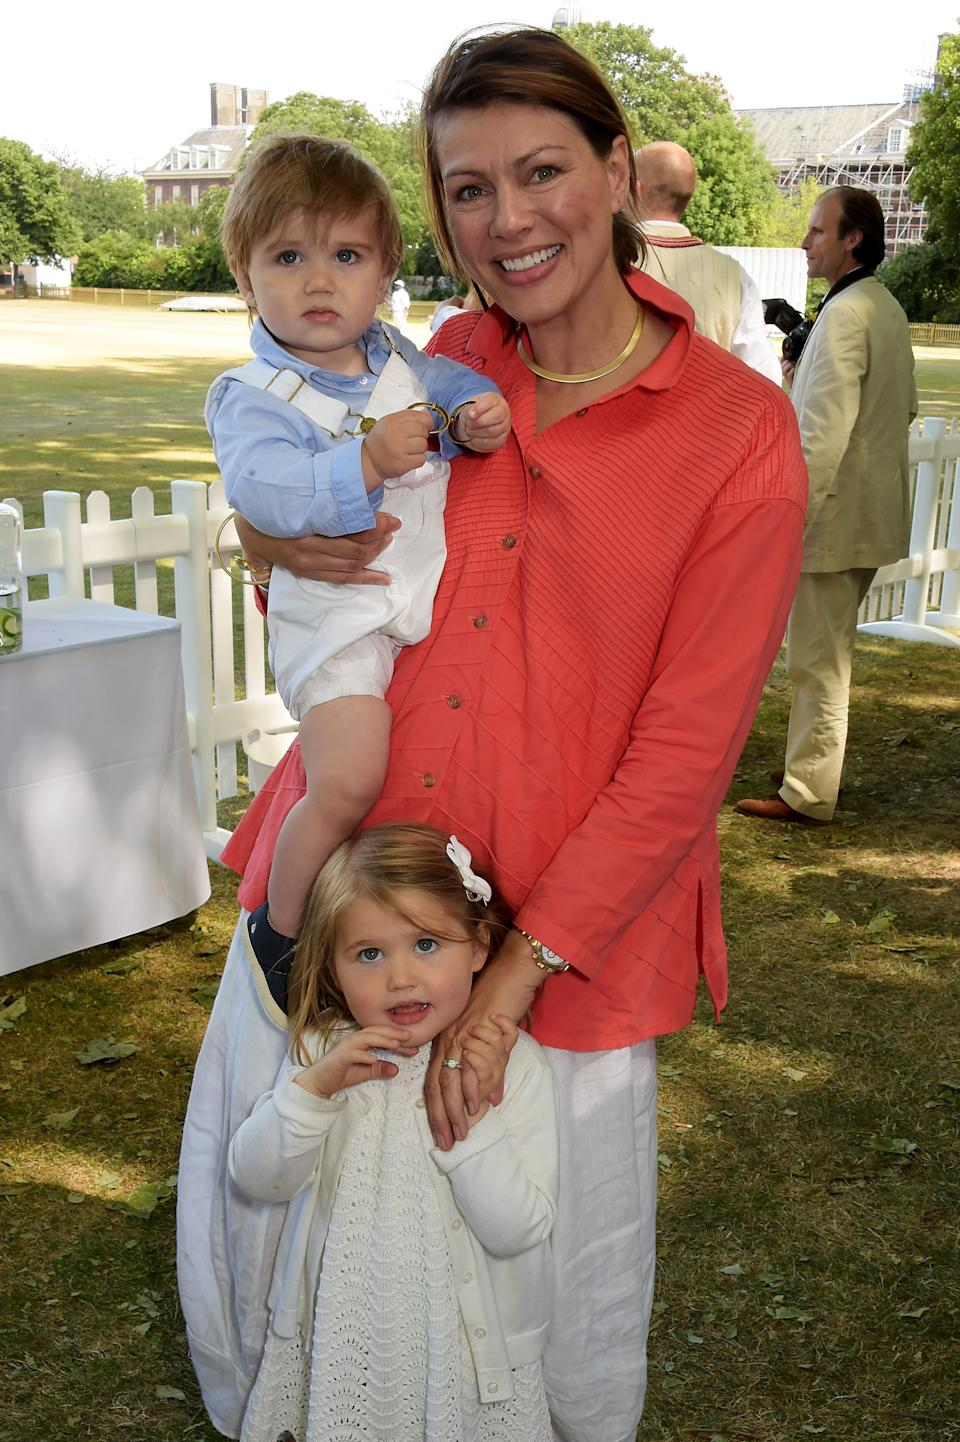 Kate Silverton, seen here with her son Wilbur and daughter Clemency, says she's worried for the mental health of children post pandemic (Photo by David M. Benett/Getty Images for Dockers)